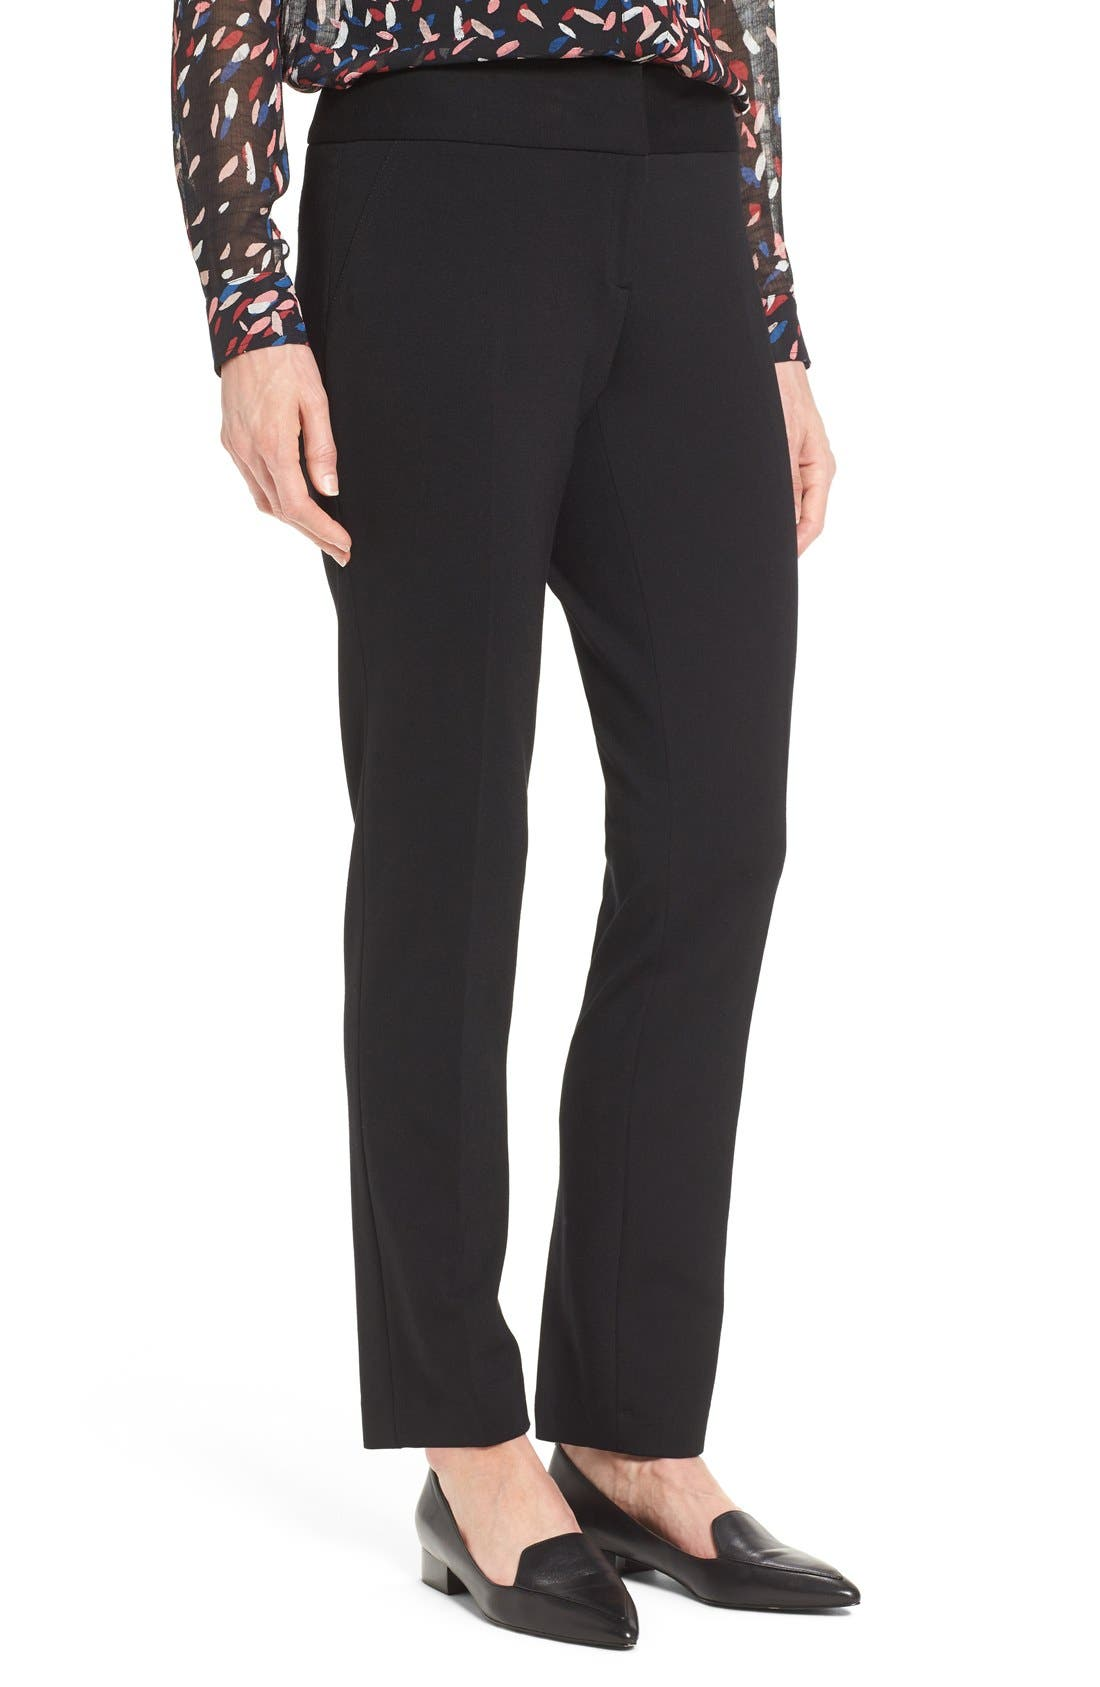 Main Image - Vince Camuto Ponte Ankle Pants (Regular & Petite)